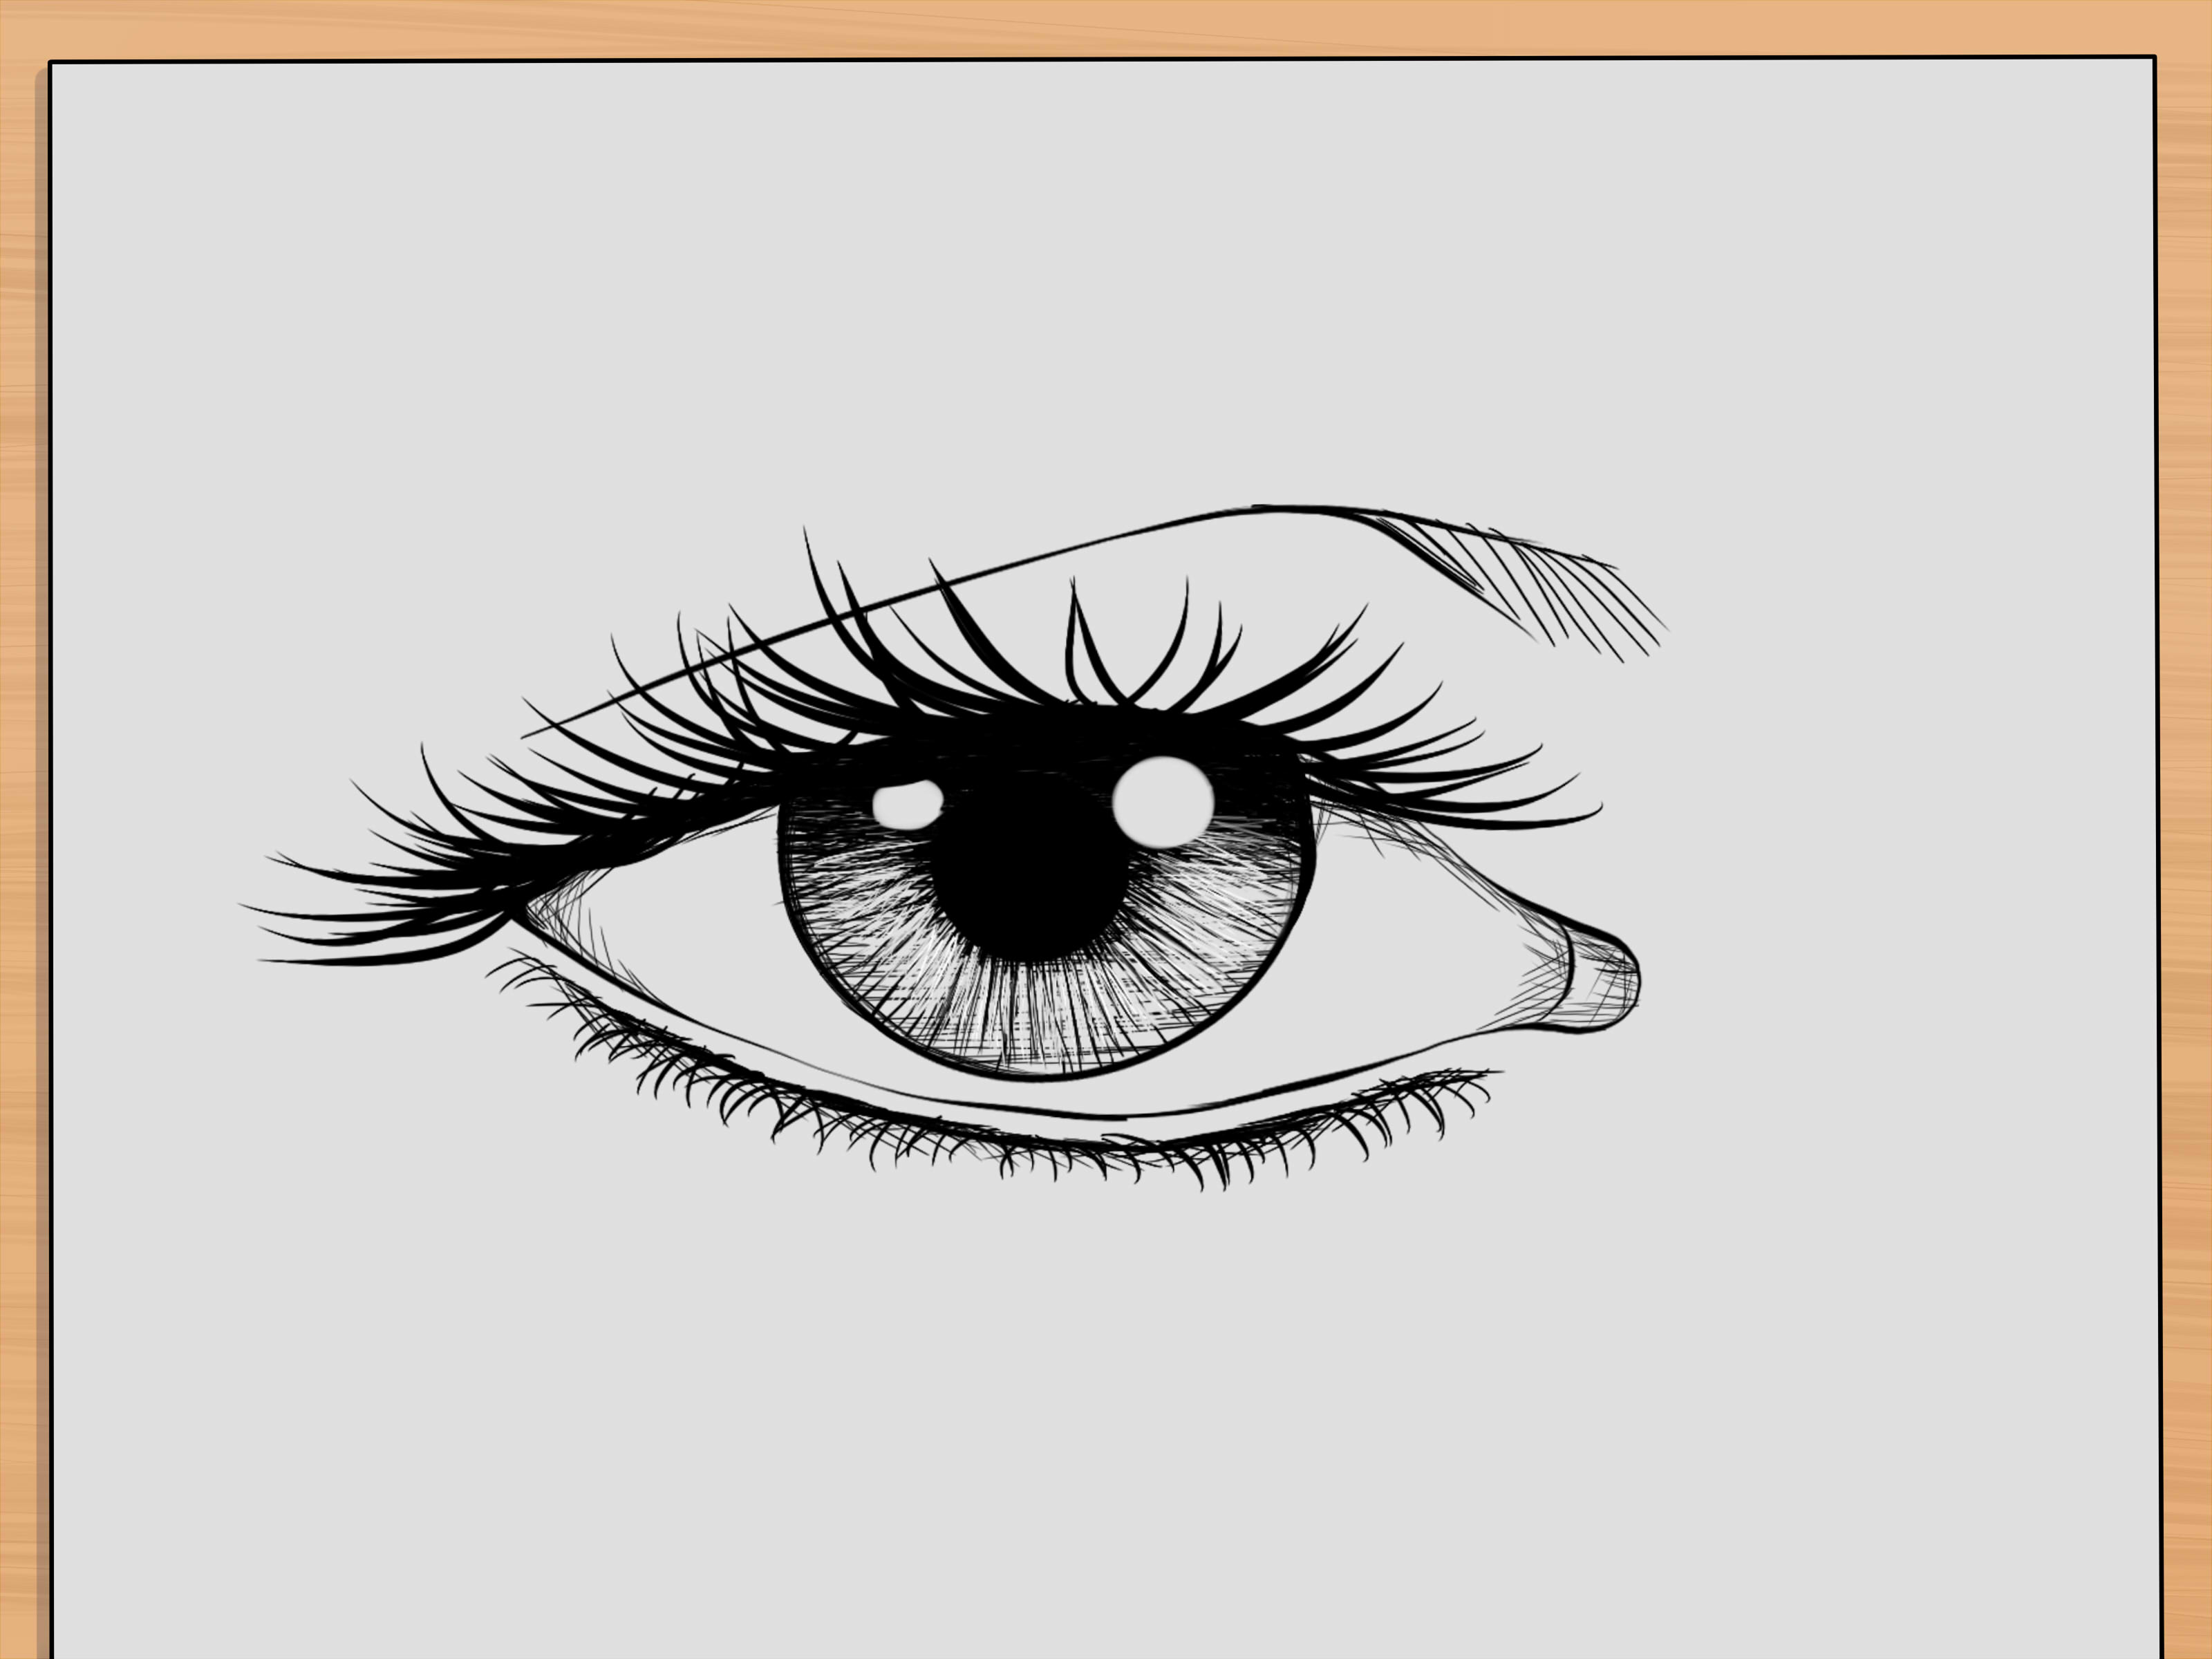 3200x2400 How To Draw Realistic Human Eyes 7 Steps (With Pictures)